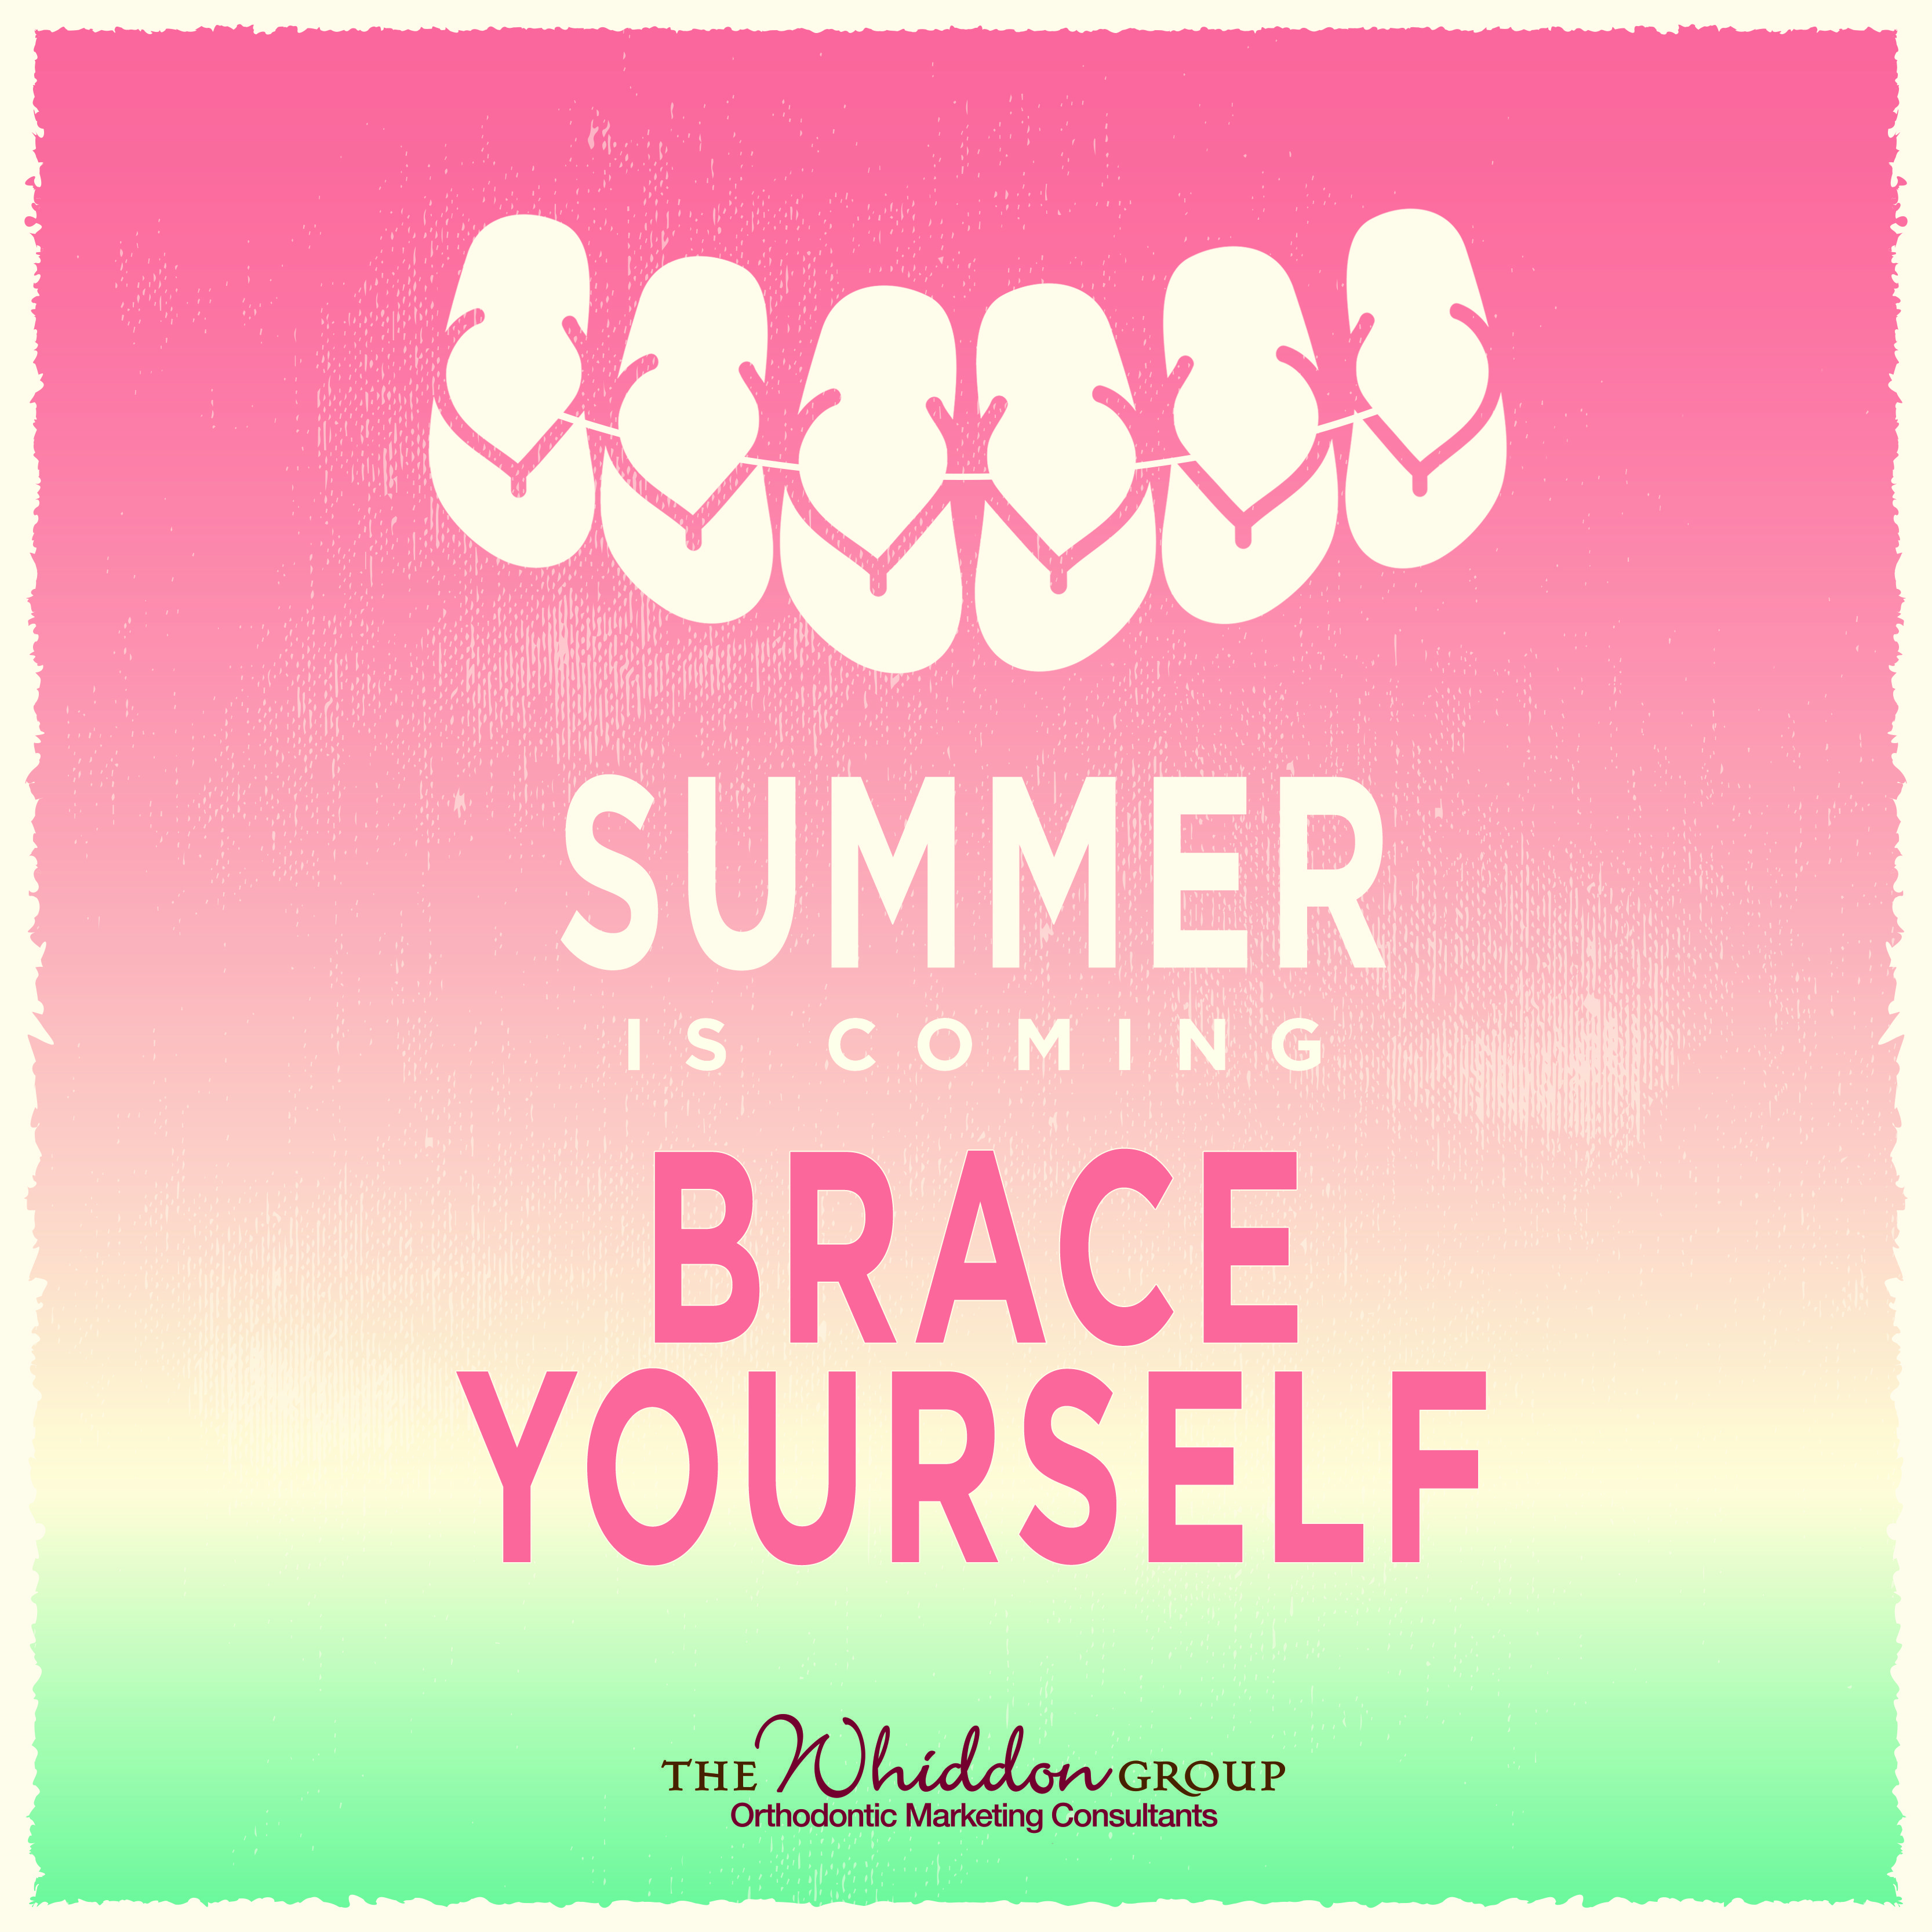 Summer is coming brace yourself we will soon roll out an easy to summer is coming brace yourself we will soon roll out an easy to use in office campaign for your practice to promote braces for summer 2016 solutioingenieria Images